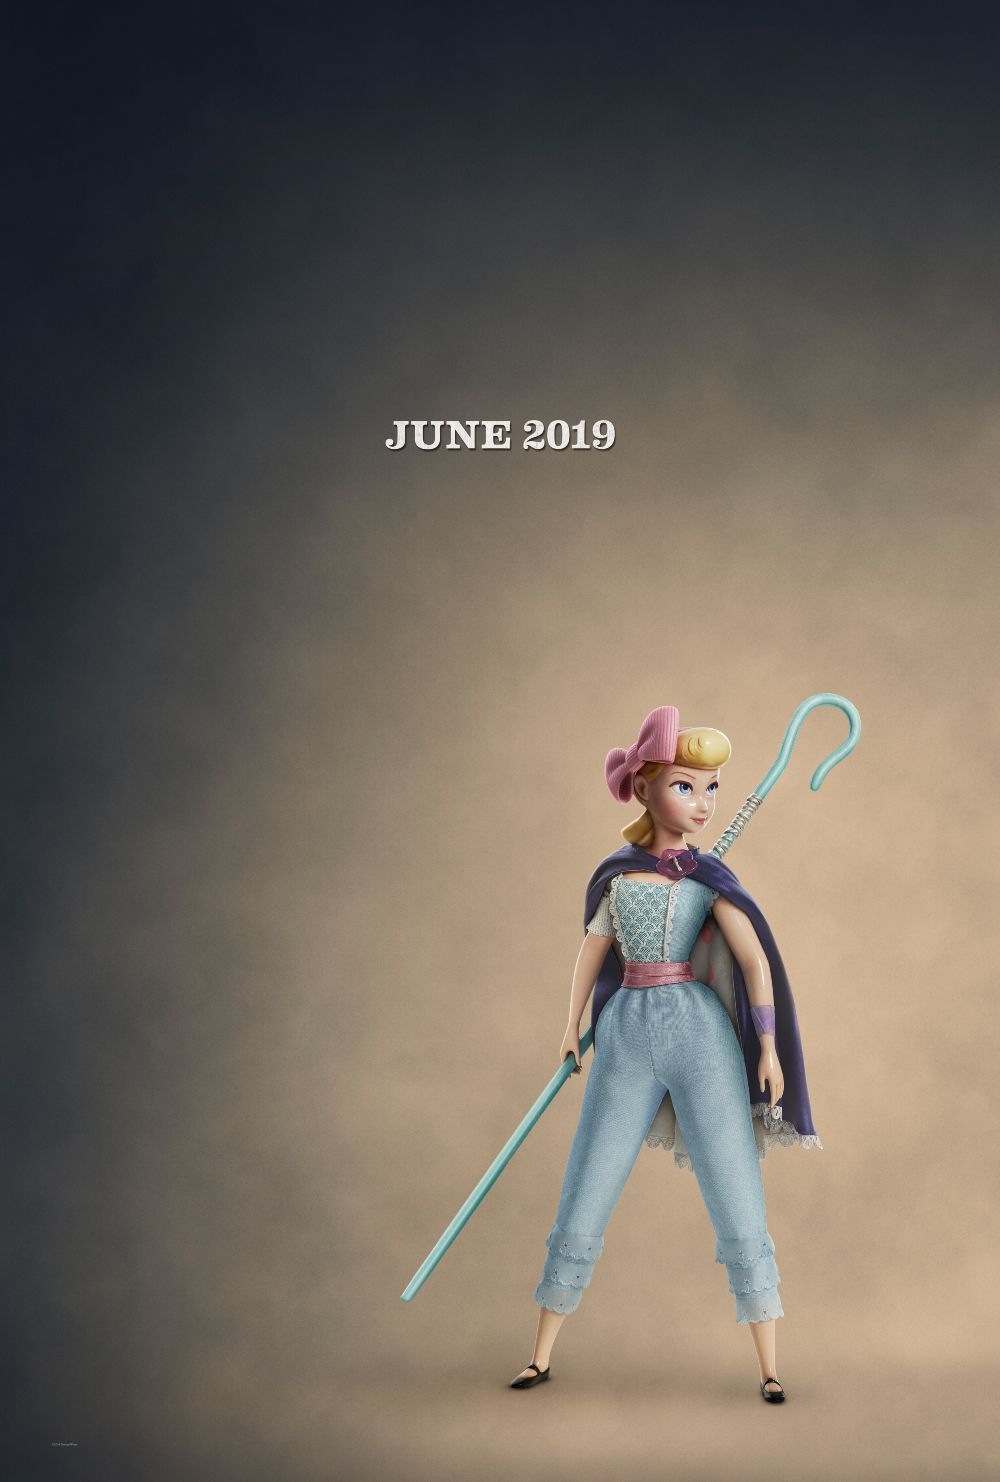 Toy Story 4 póster sinopsis Bo Peep - Betty Toy Story 4 cartel argumento 1b61b8fd289